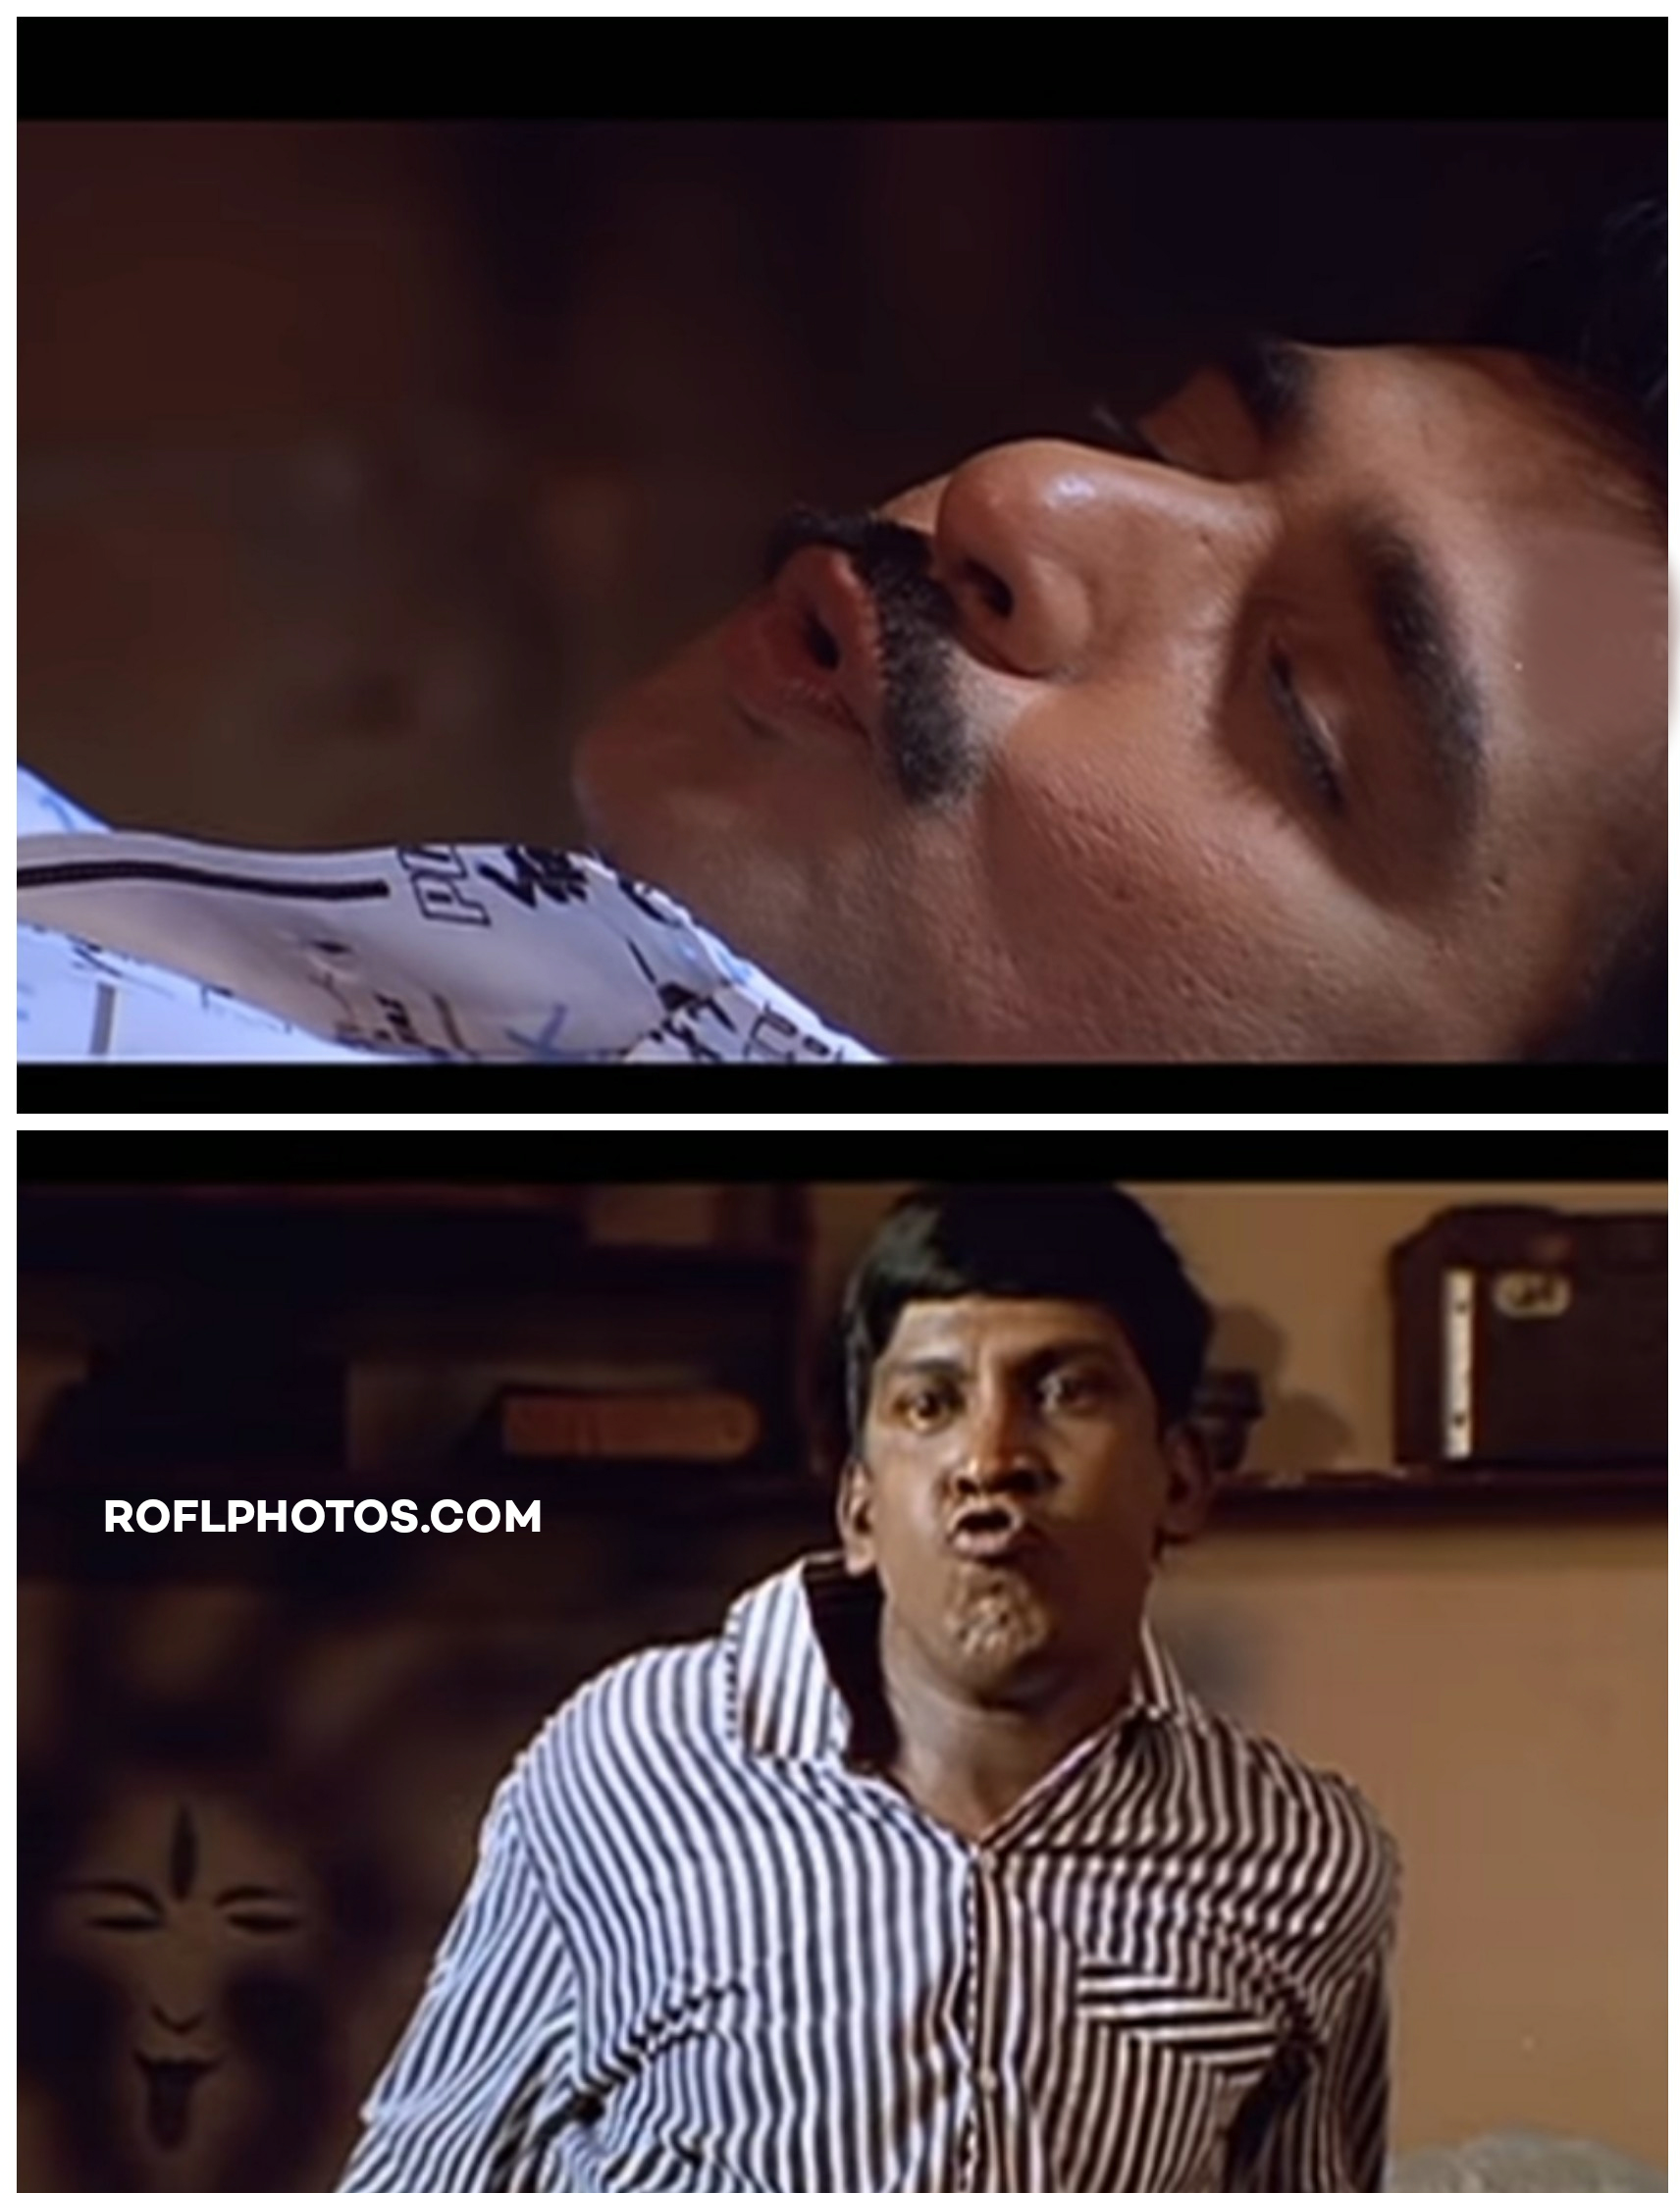 Vadivelu Images : vadivelu, images, Tamil, Comedy, Memes:, Vadivelu, Memes, Images, Download, Funny, Dialogues, Photo, Comments, Commants